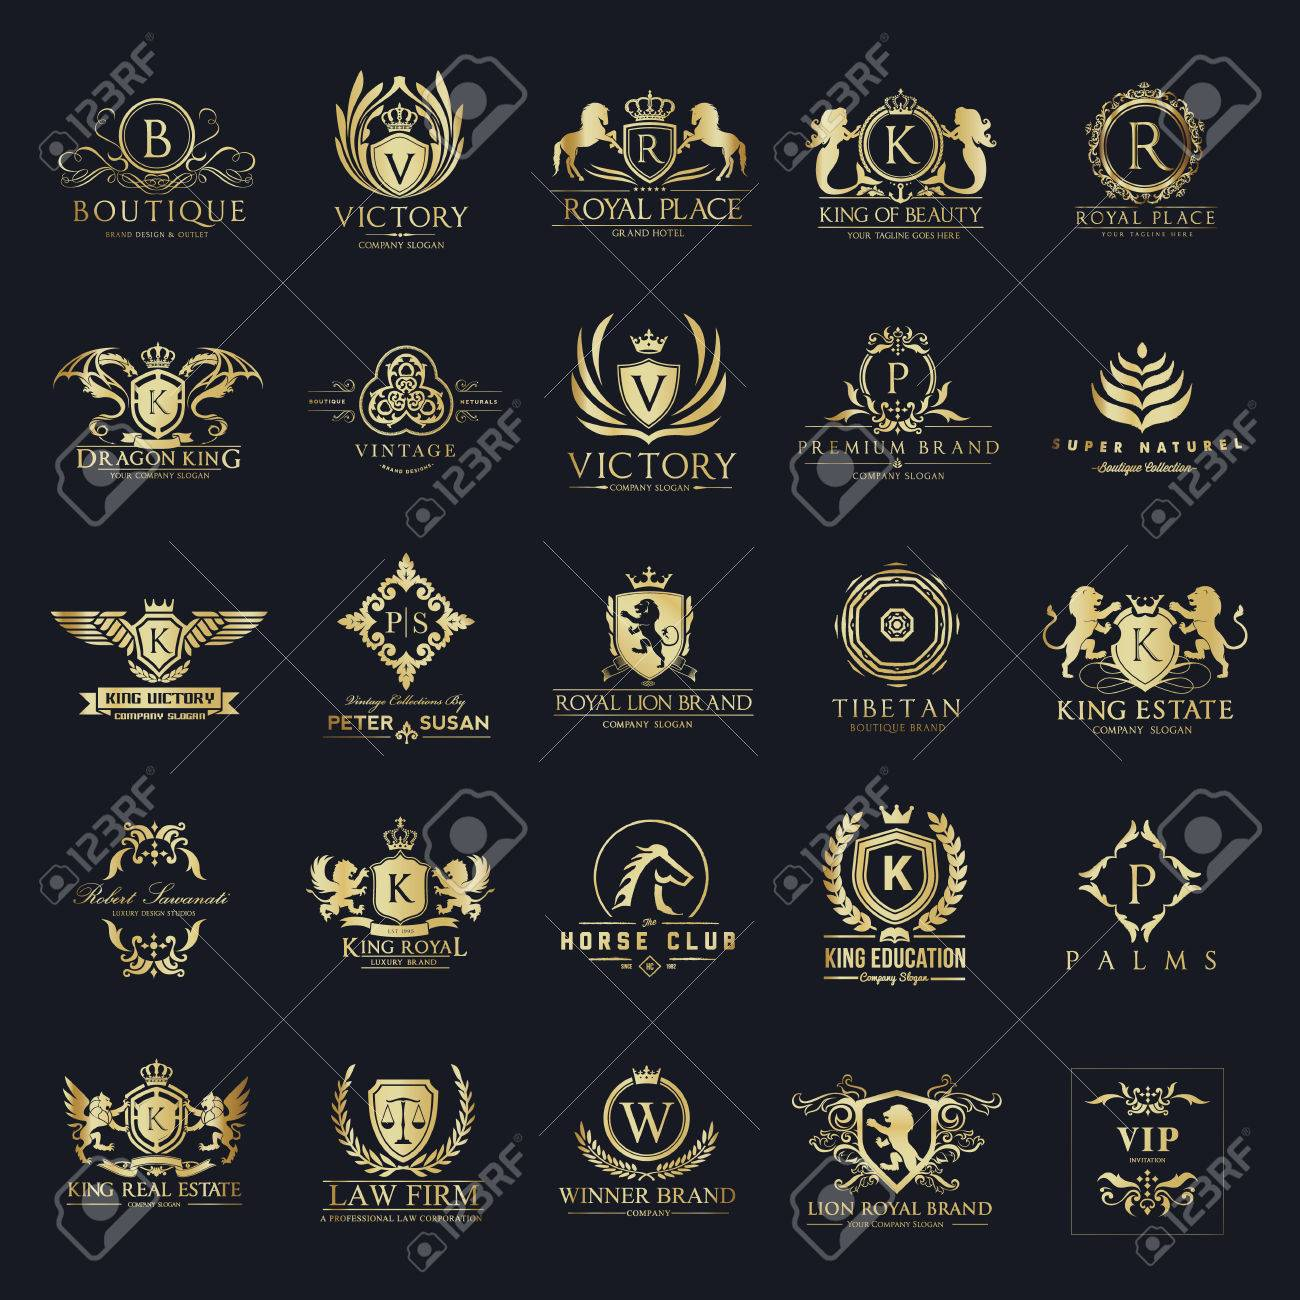 Luxury crests and Hotel logo collection - 77647841